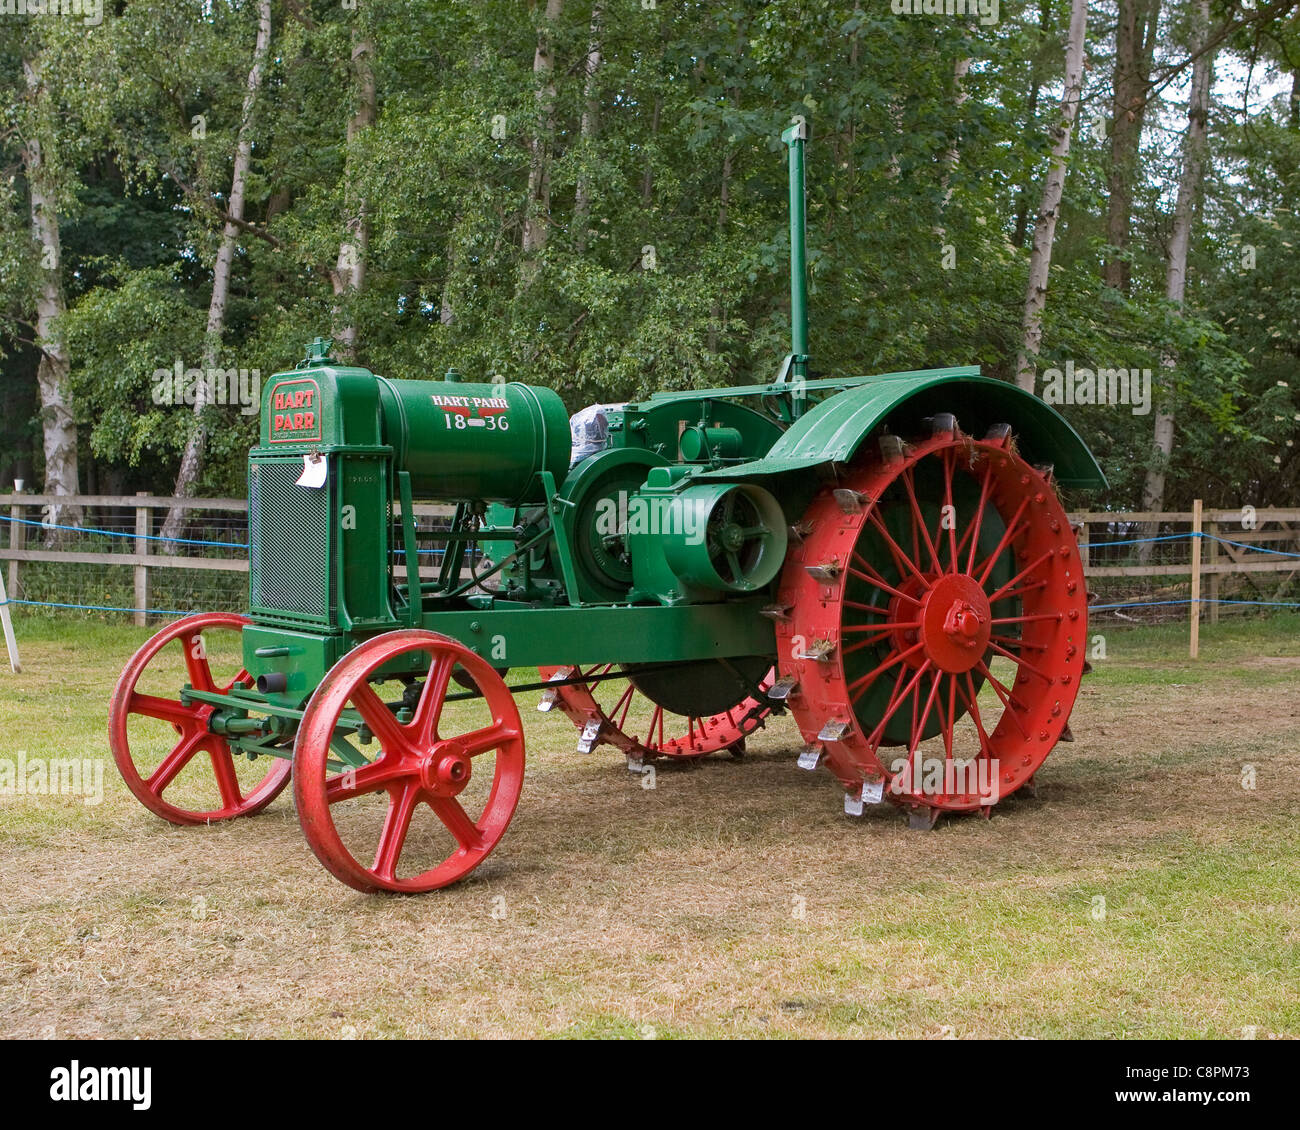 Hart-Parr Model 18-36 Tractor - Stock Image